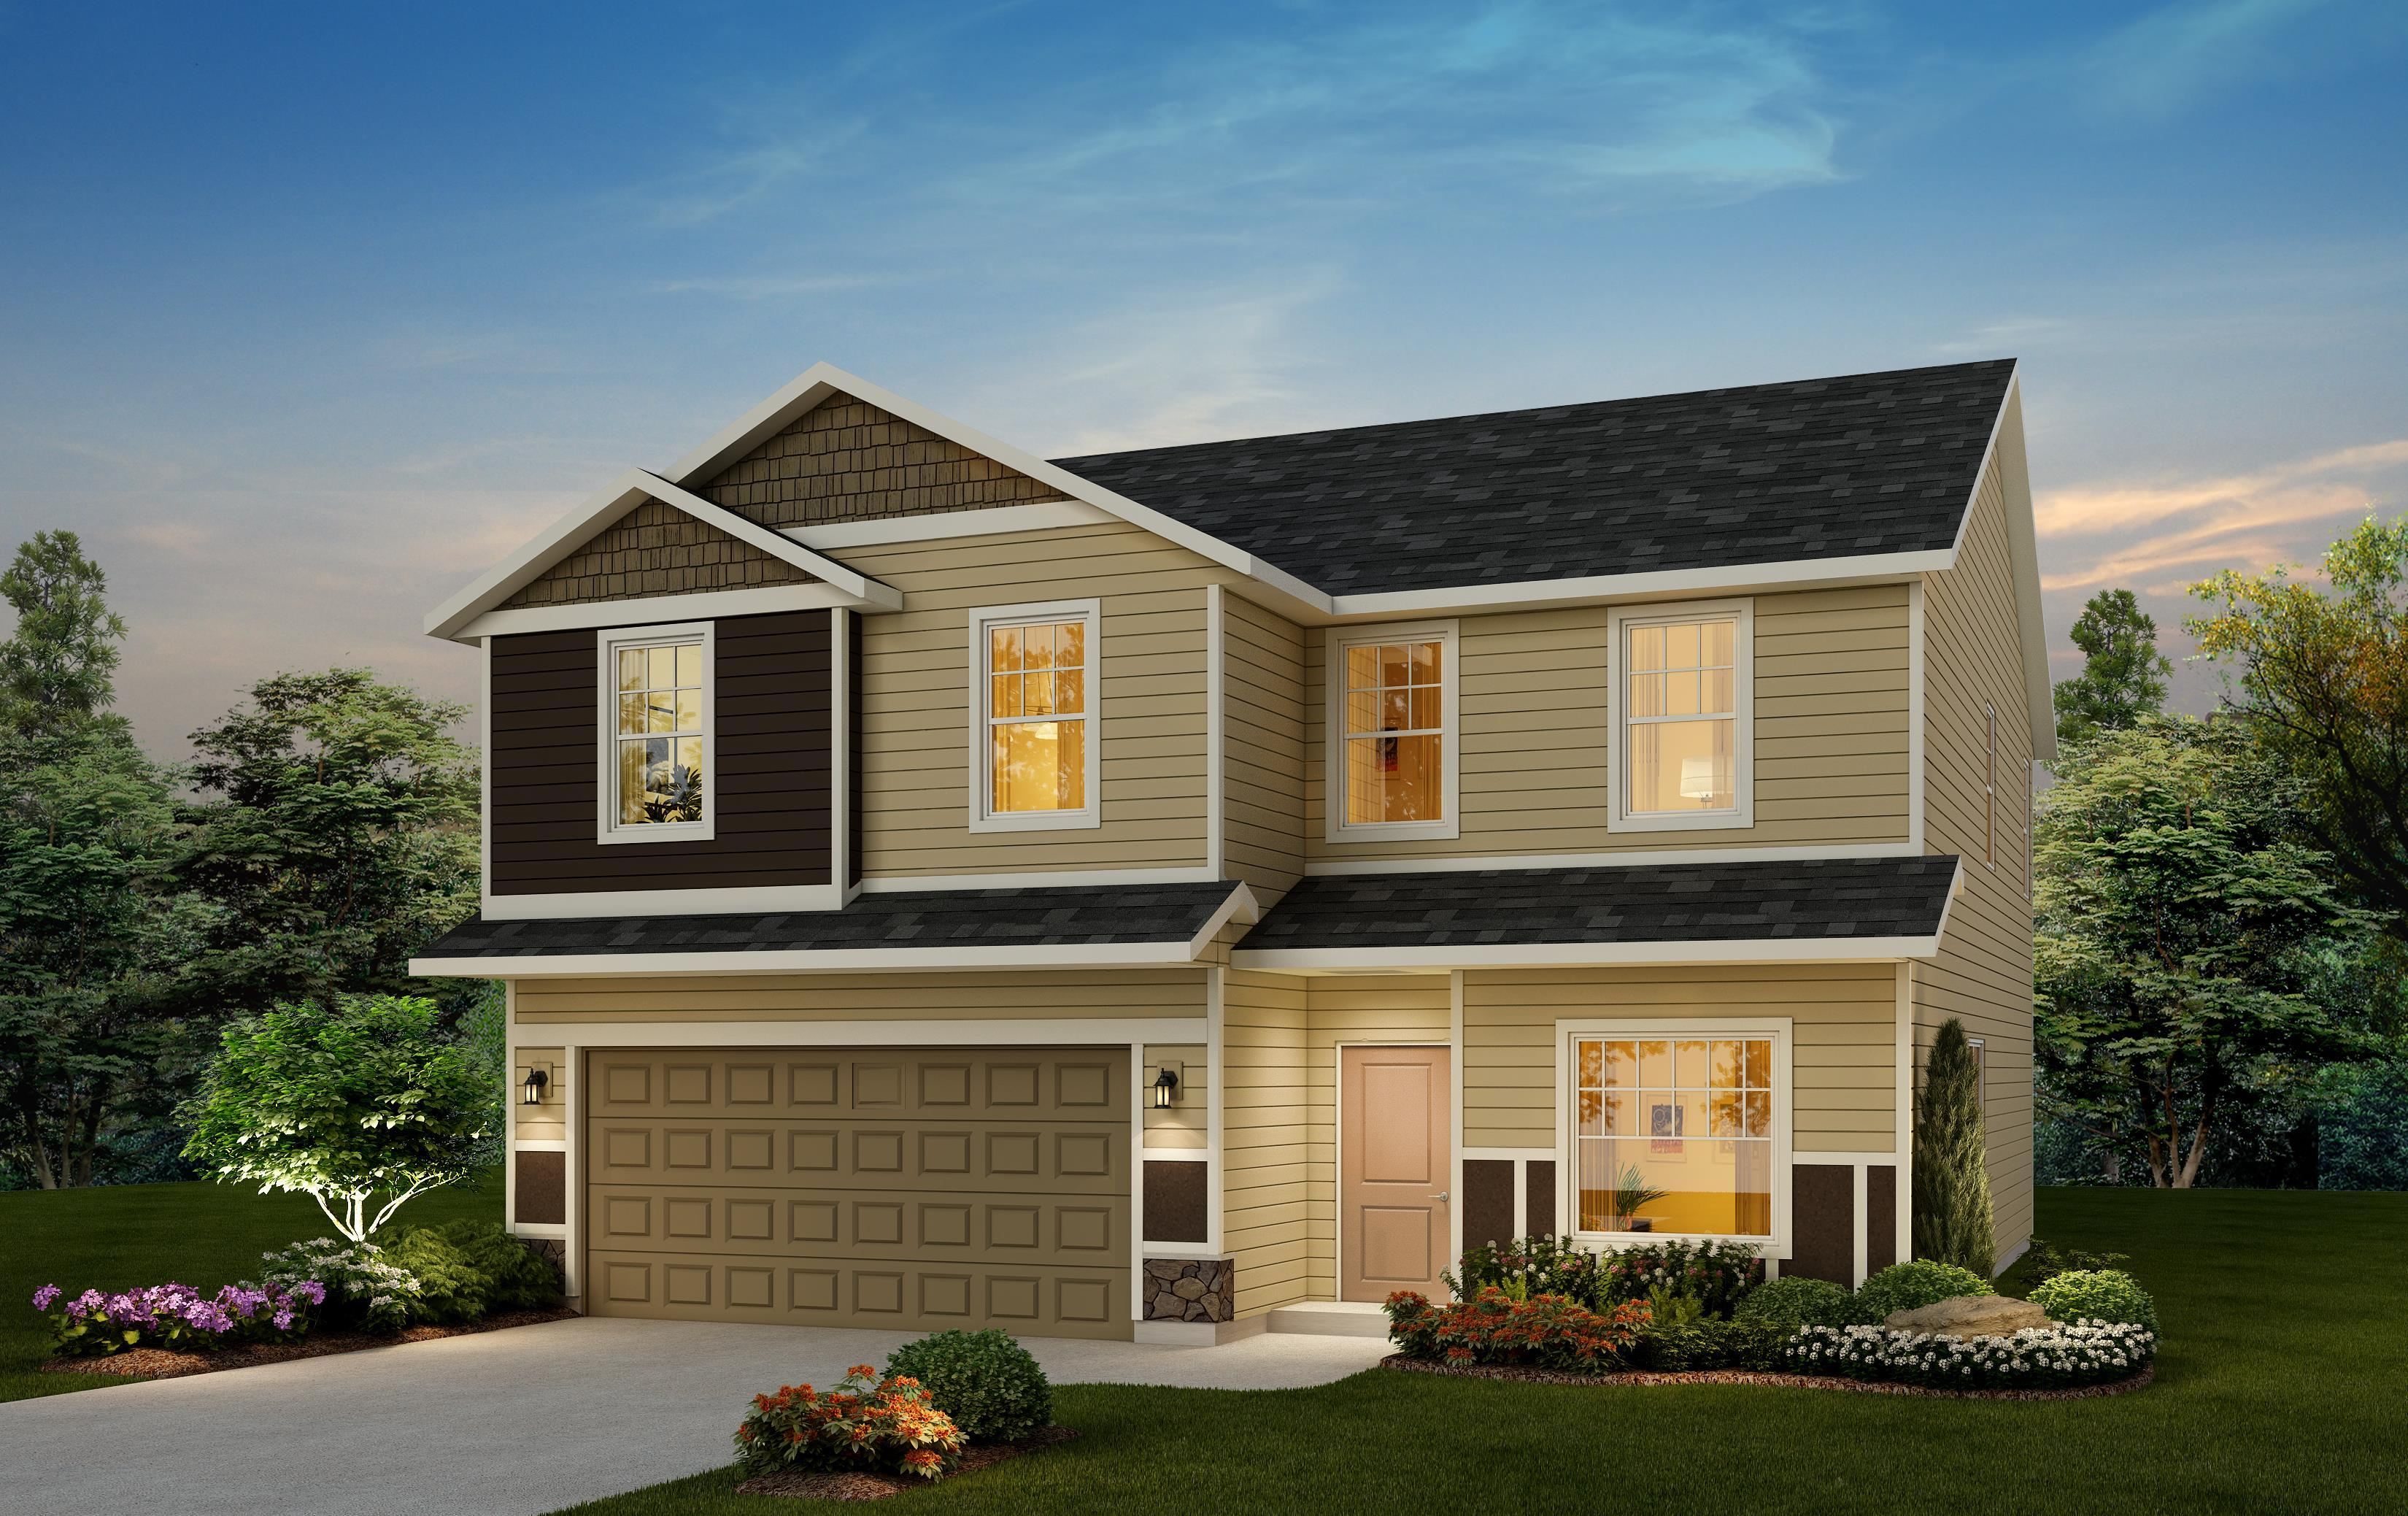 New Construction Homes Plans In Spokane Wa 287 Newhomesource